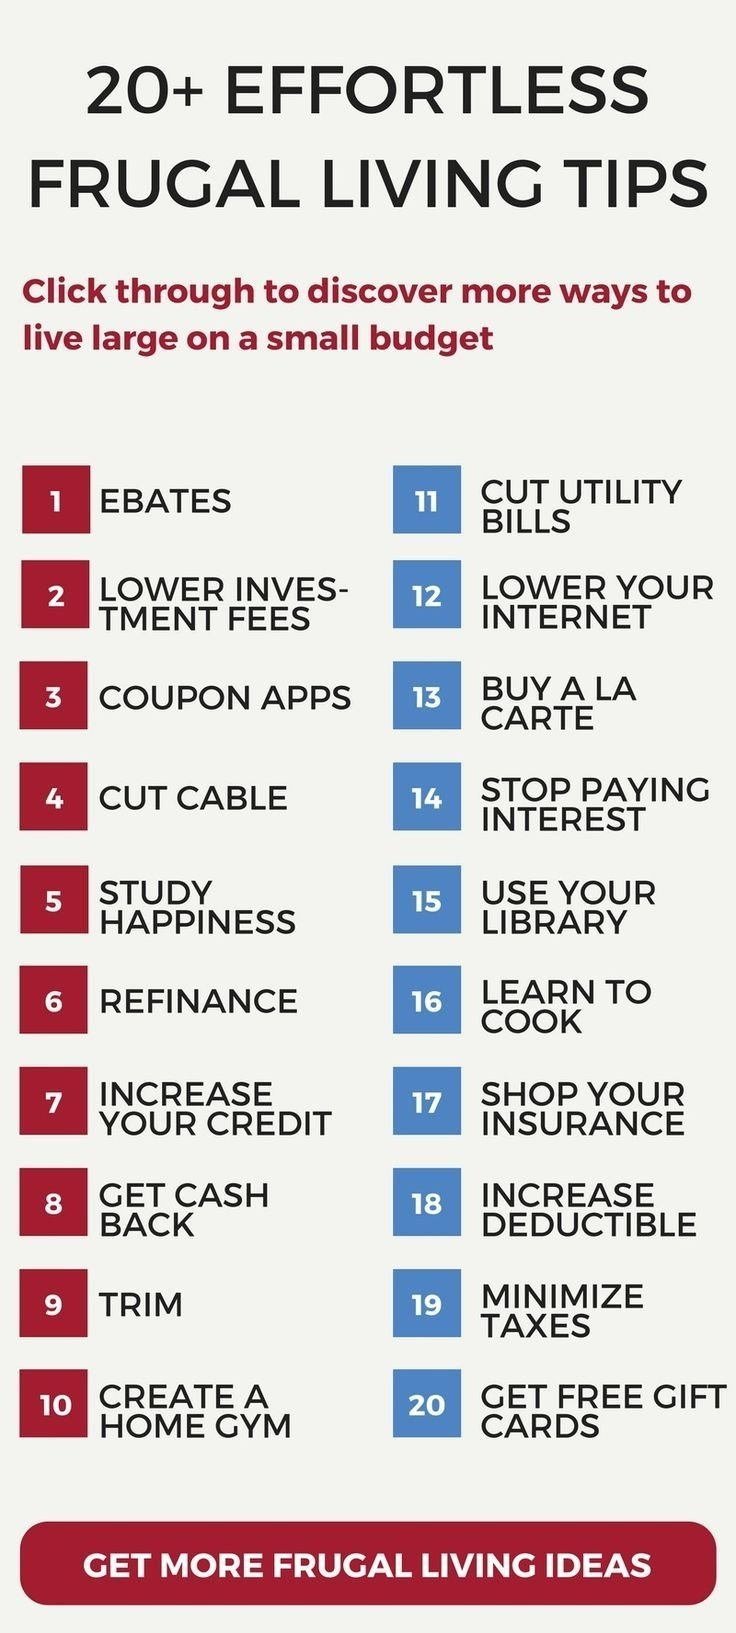 how to save money wisely: 21 super easy ways to save money, fast